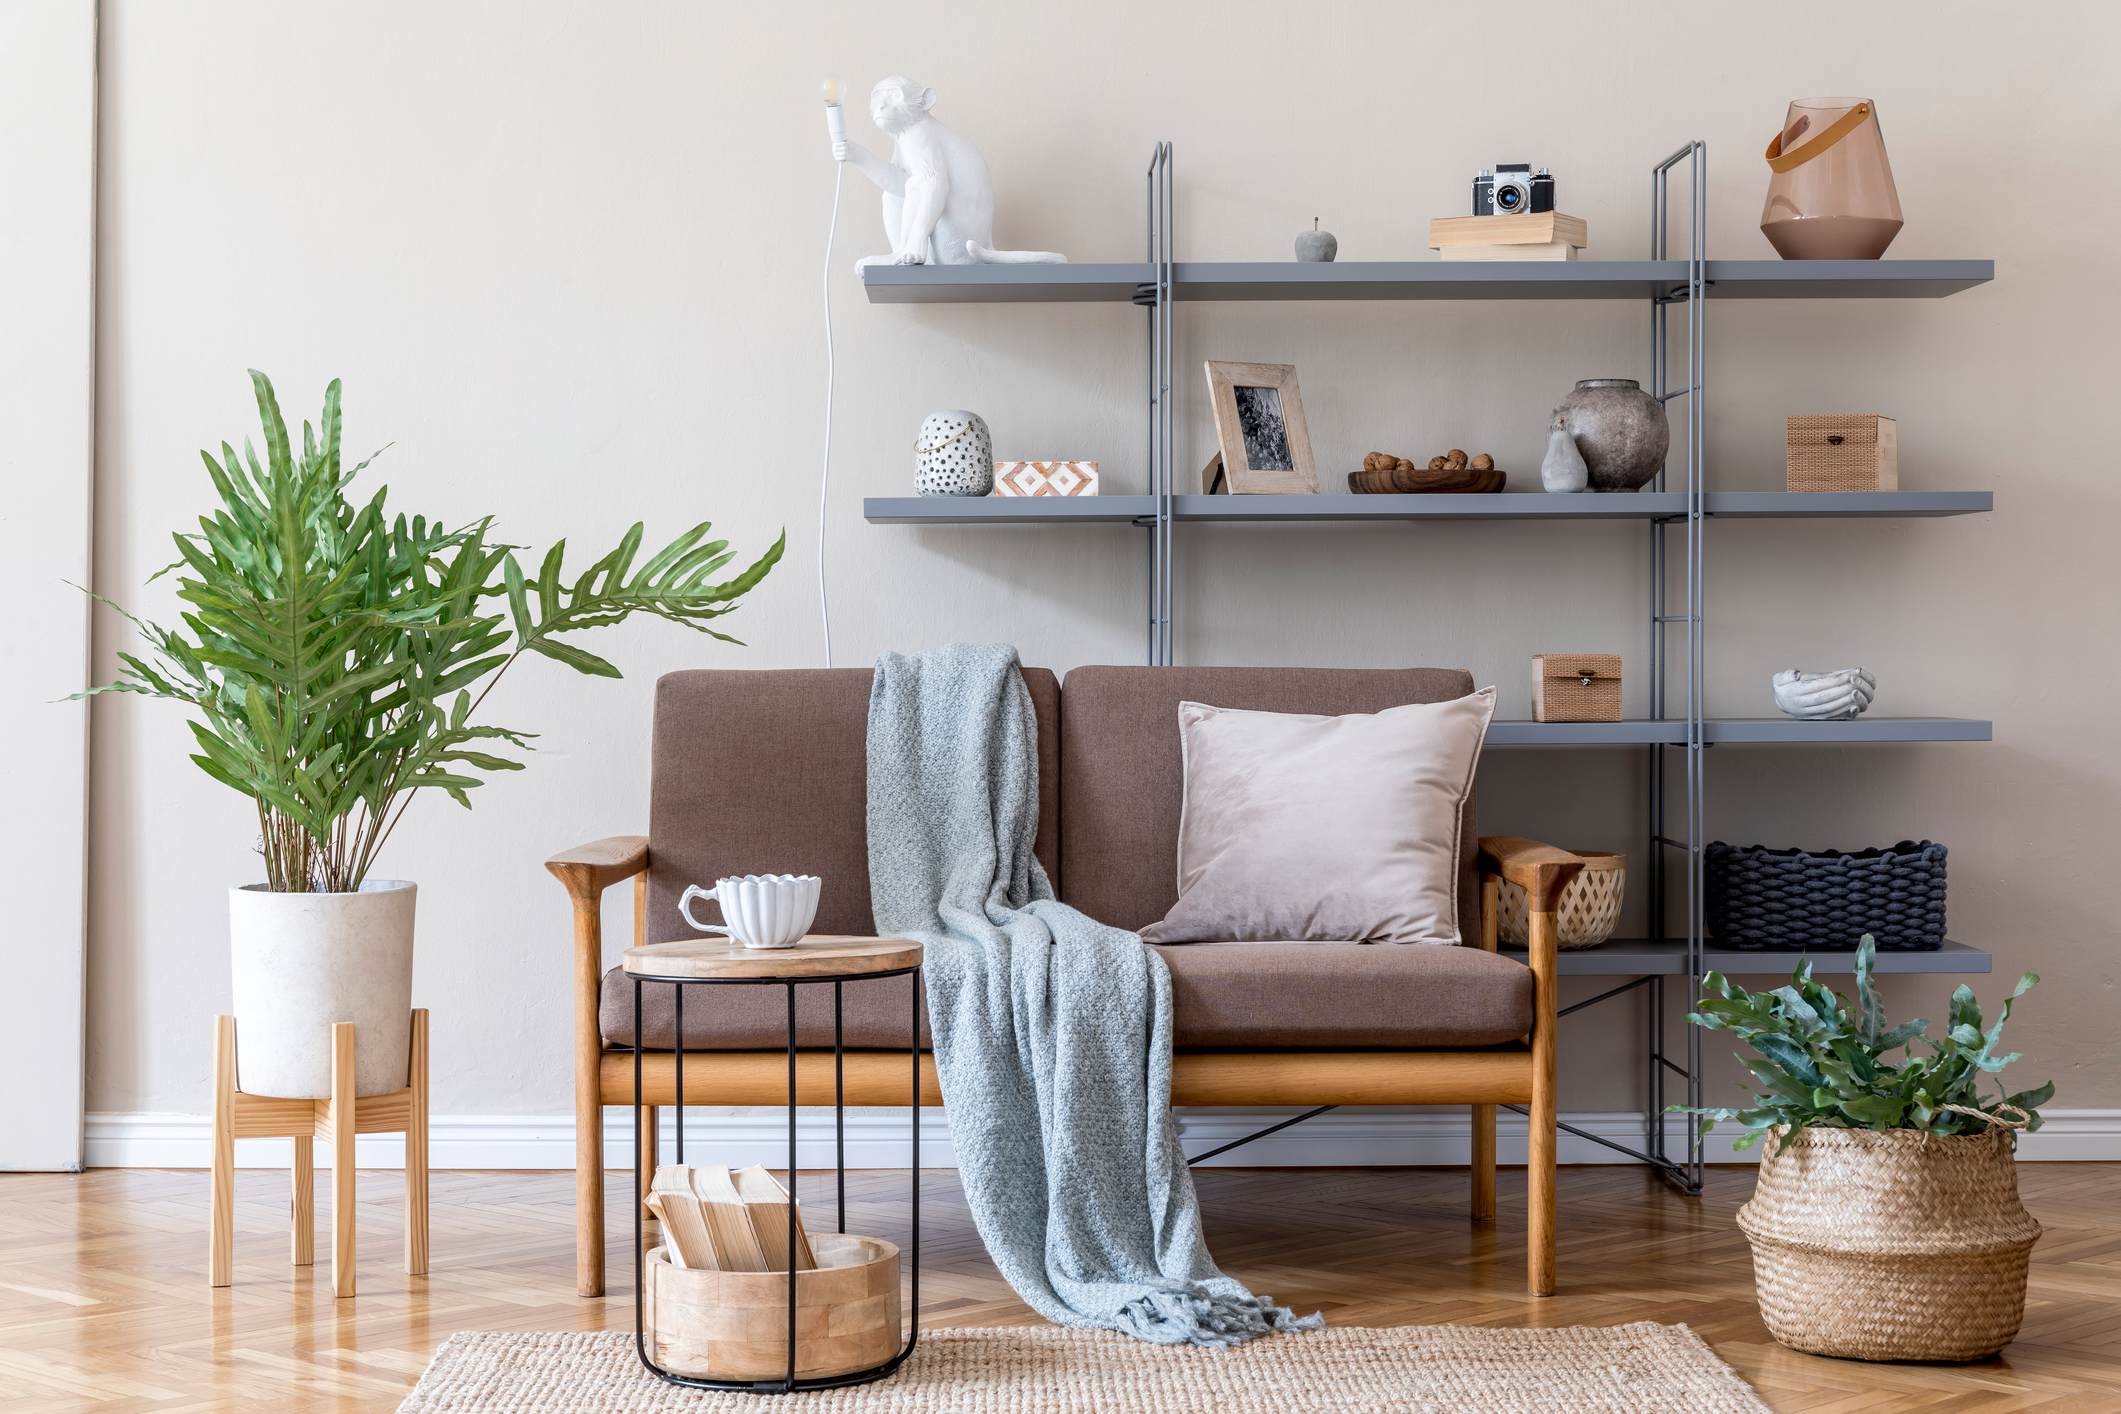 The Japandi home decor aesthetic, that's setting the mood for 32